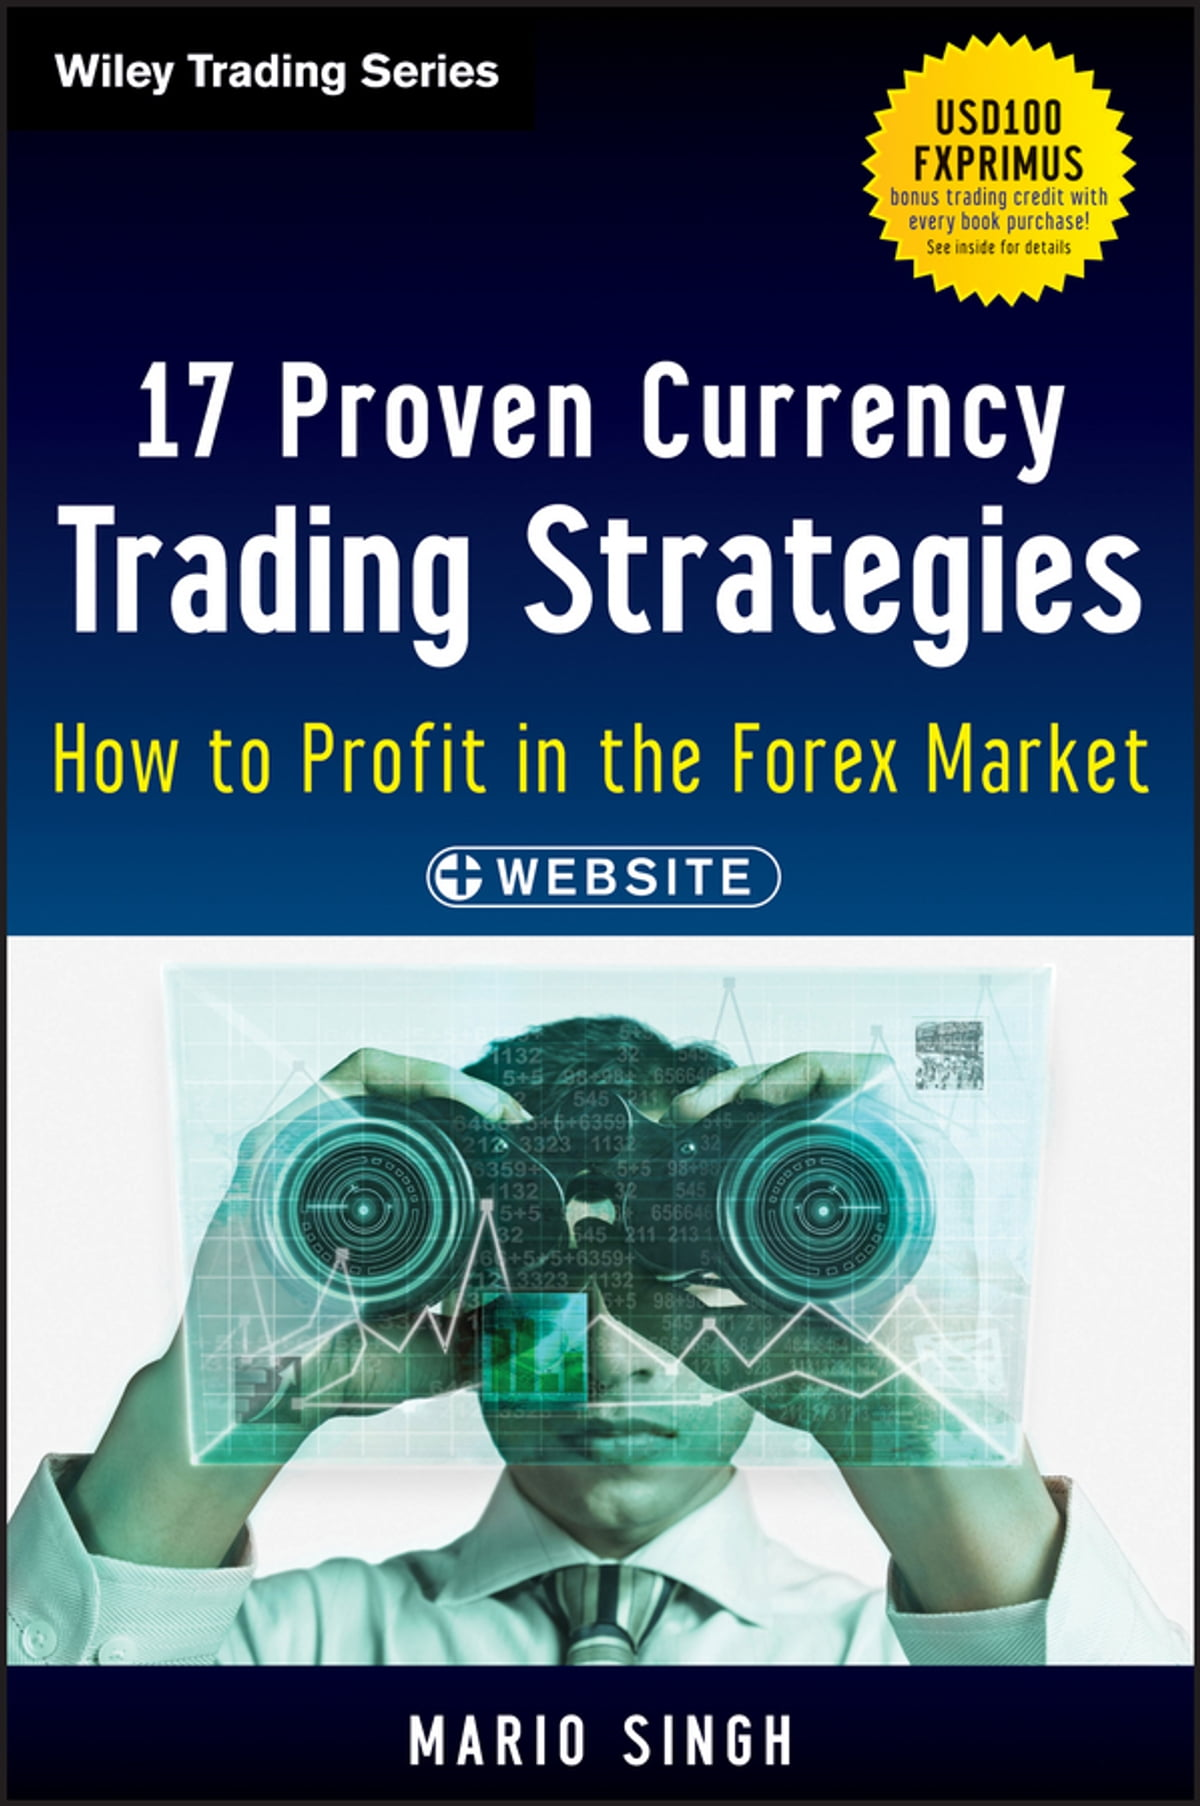 17 Proven Currency Trading Strategies  How To Profit In The Forex Market  Ebook By Mario